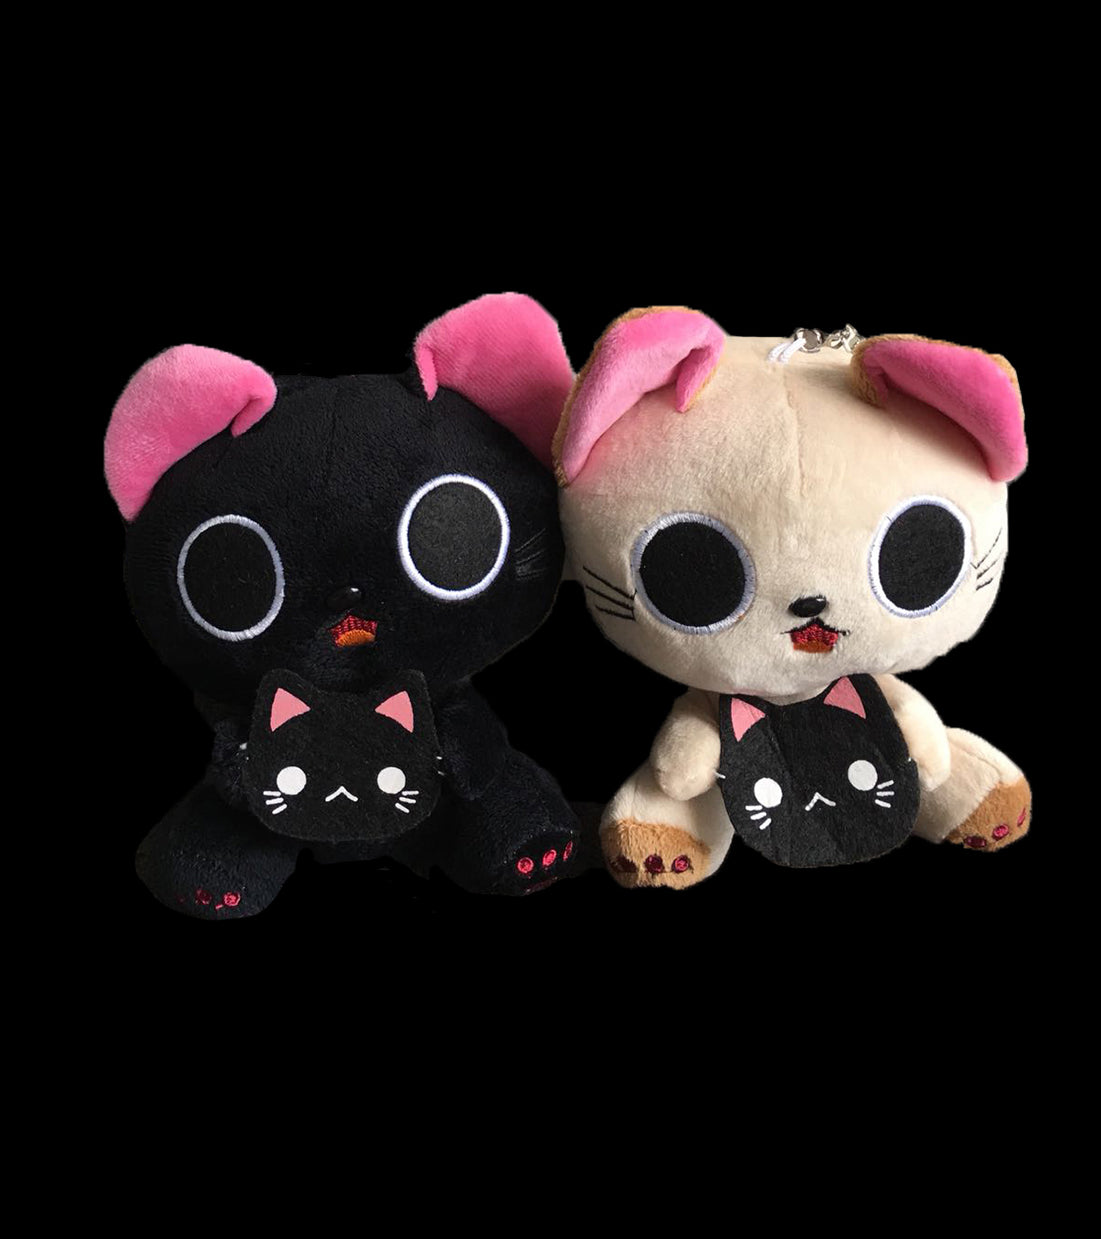 Cute Kittens Plush Pair